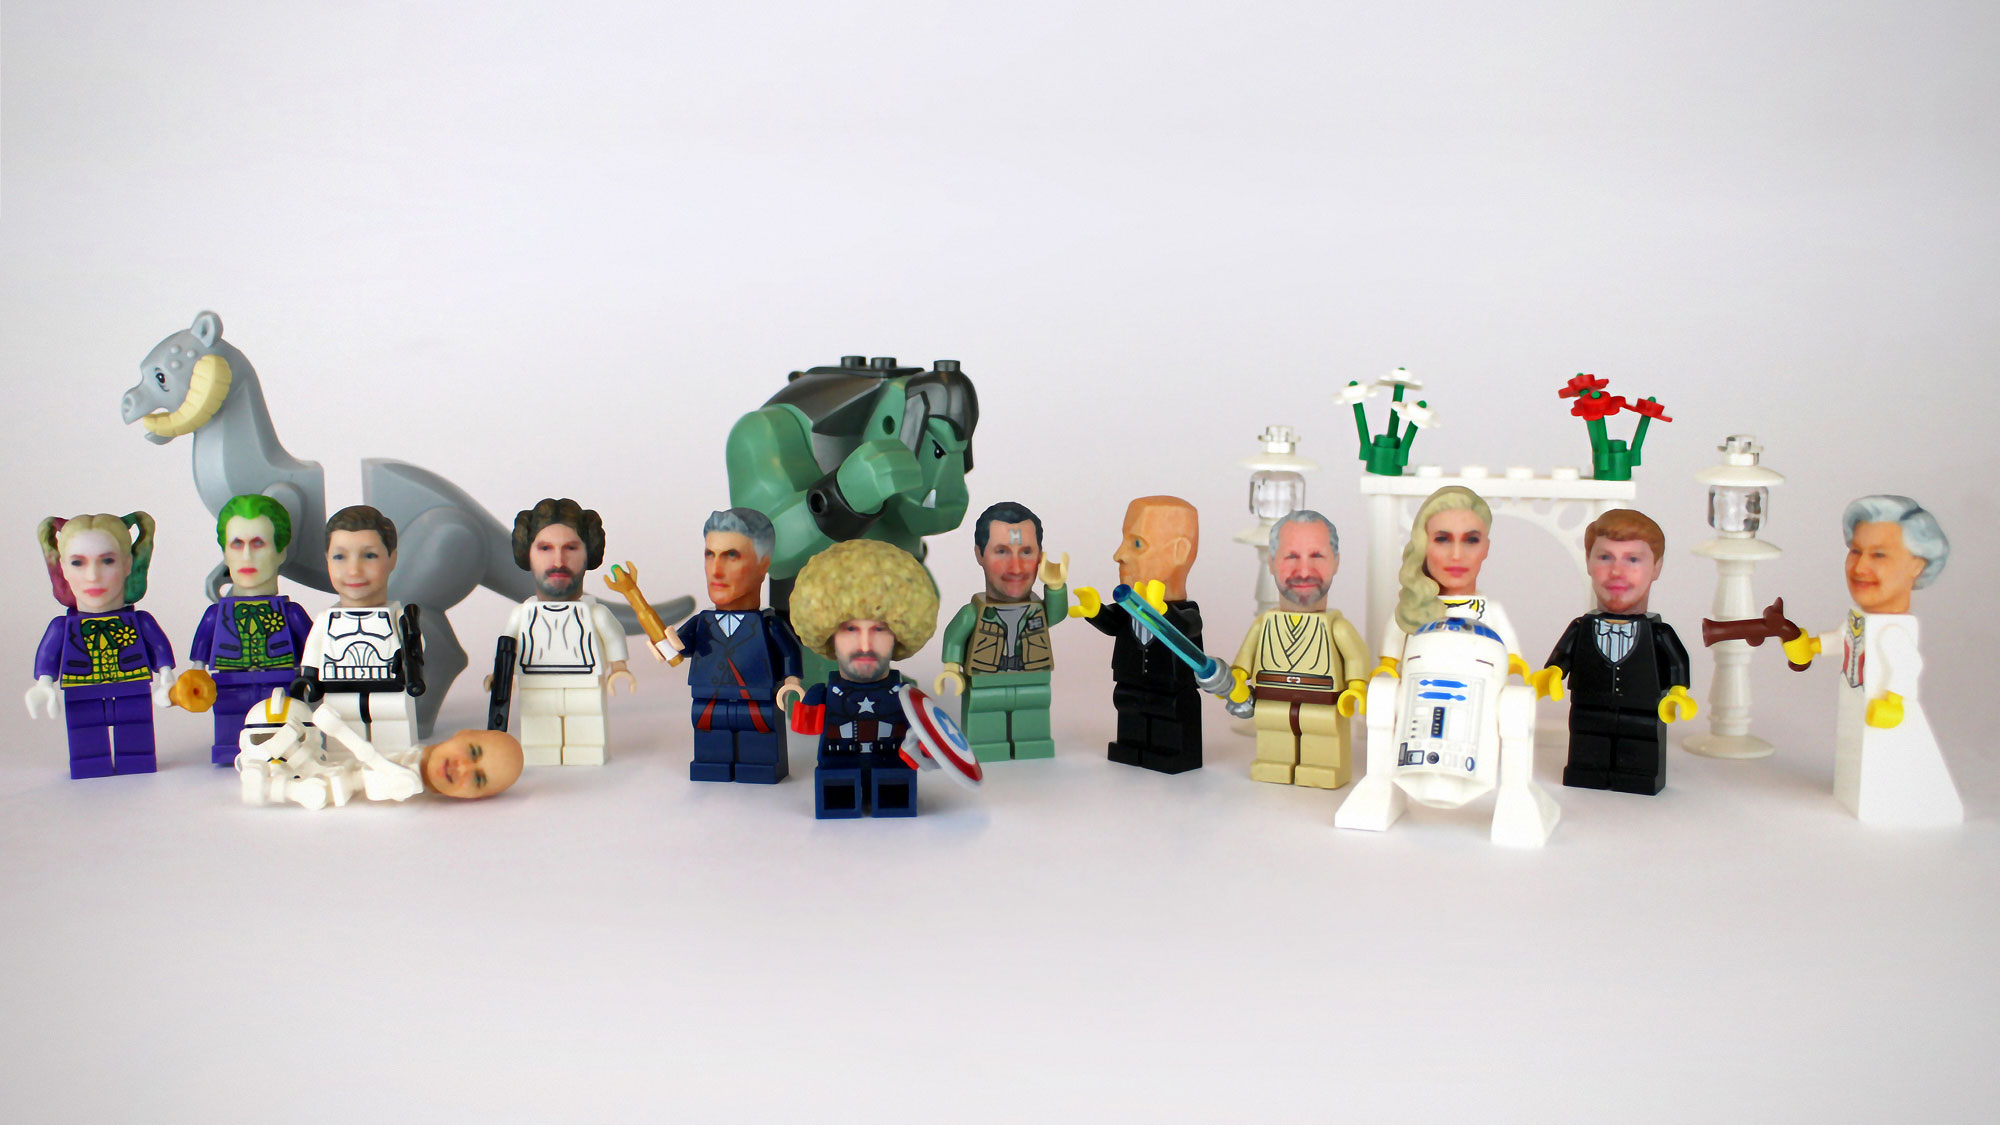 Personalized Minifigure with 3D Printed Personalized Head